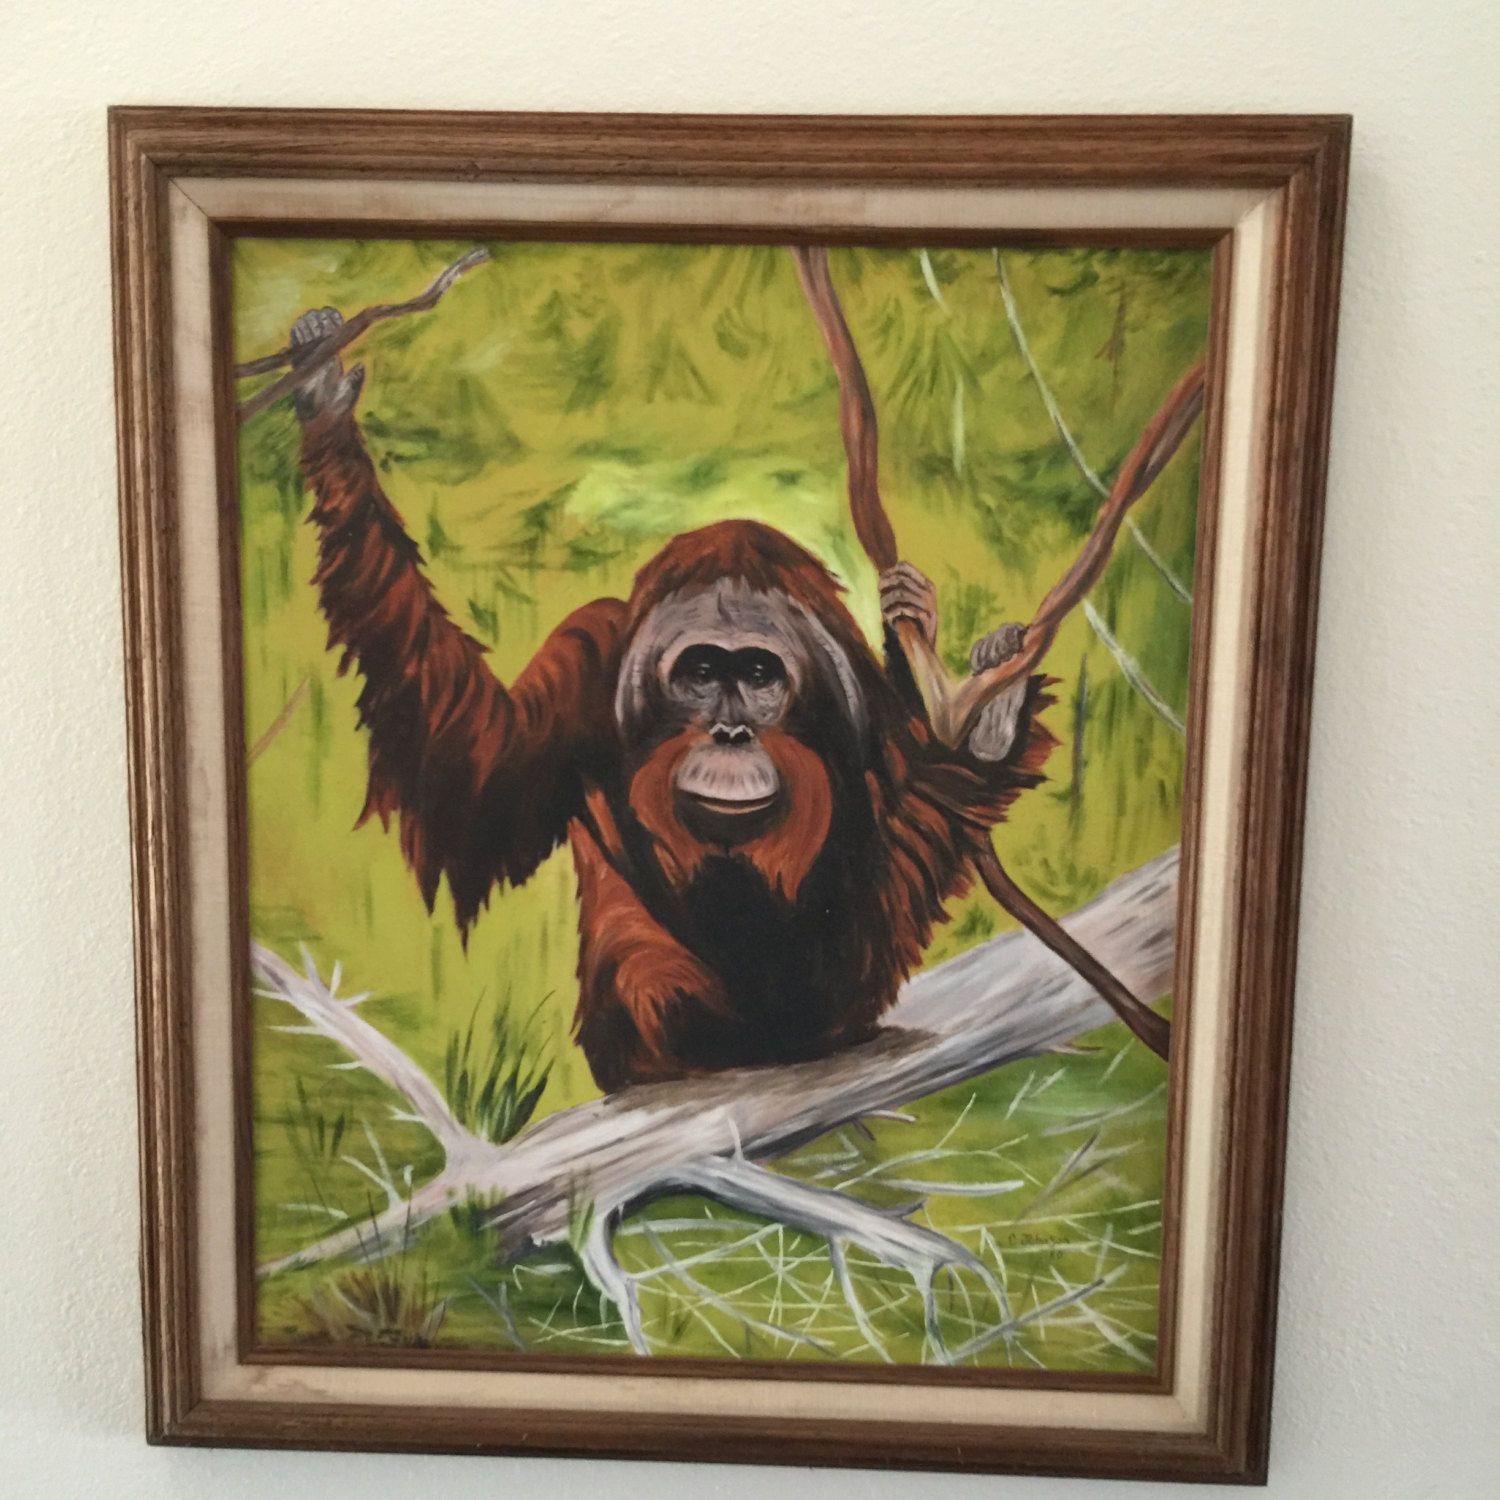 Orangutan In The Jungle Framed Oil Painting On Canvas Vintage Ken